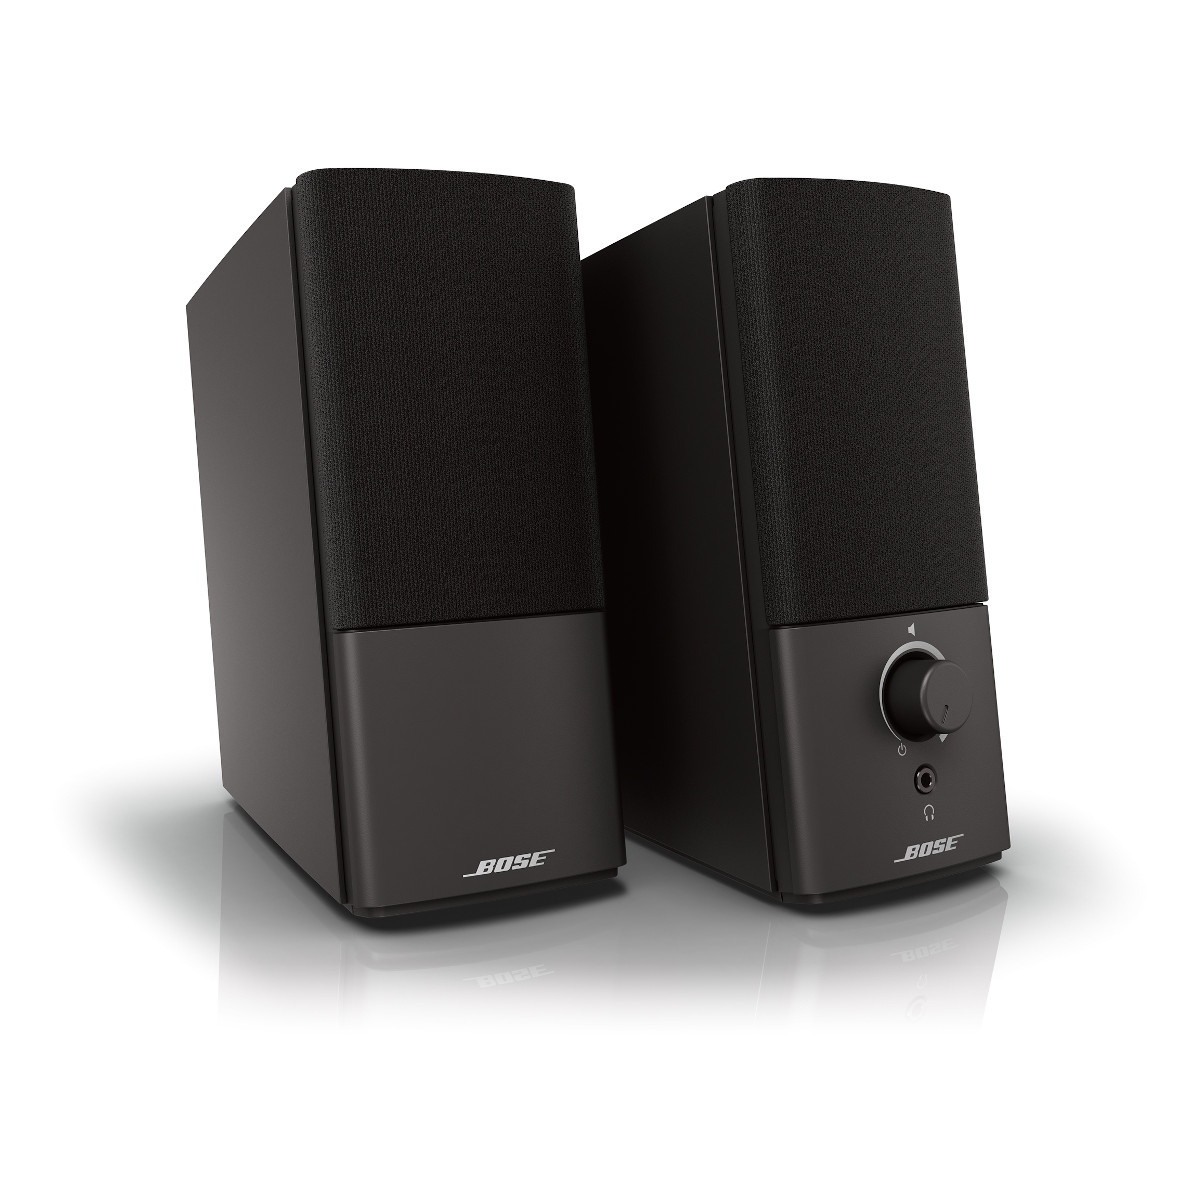 bose companion 2 series iii multimedia speaker system black 17817602853 ebay. Black Bedroom Furniture Sets. Home Design Ideas